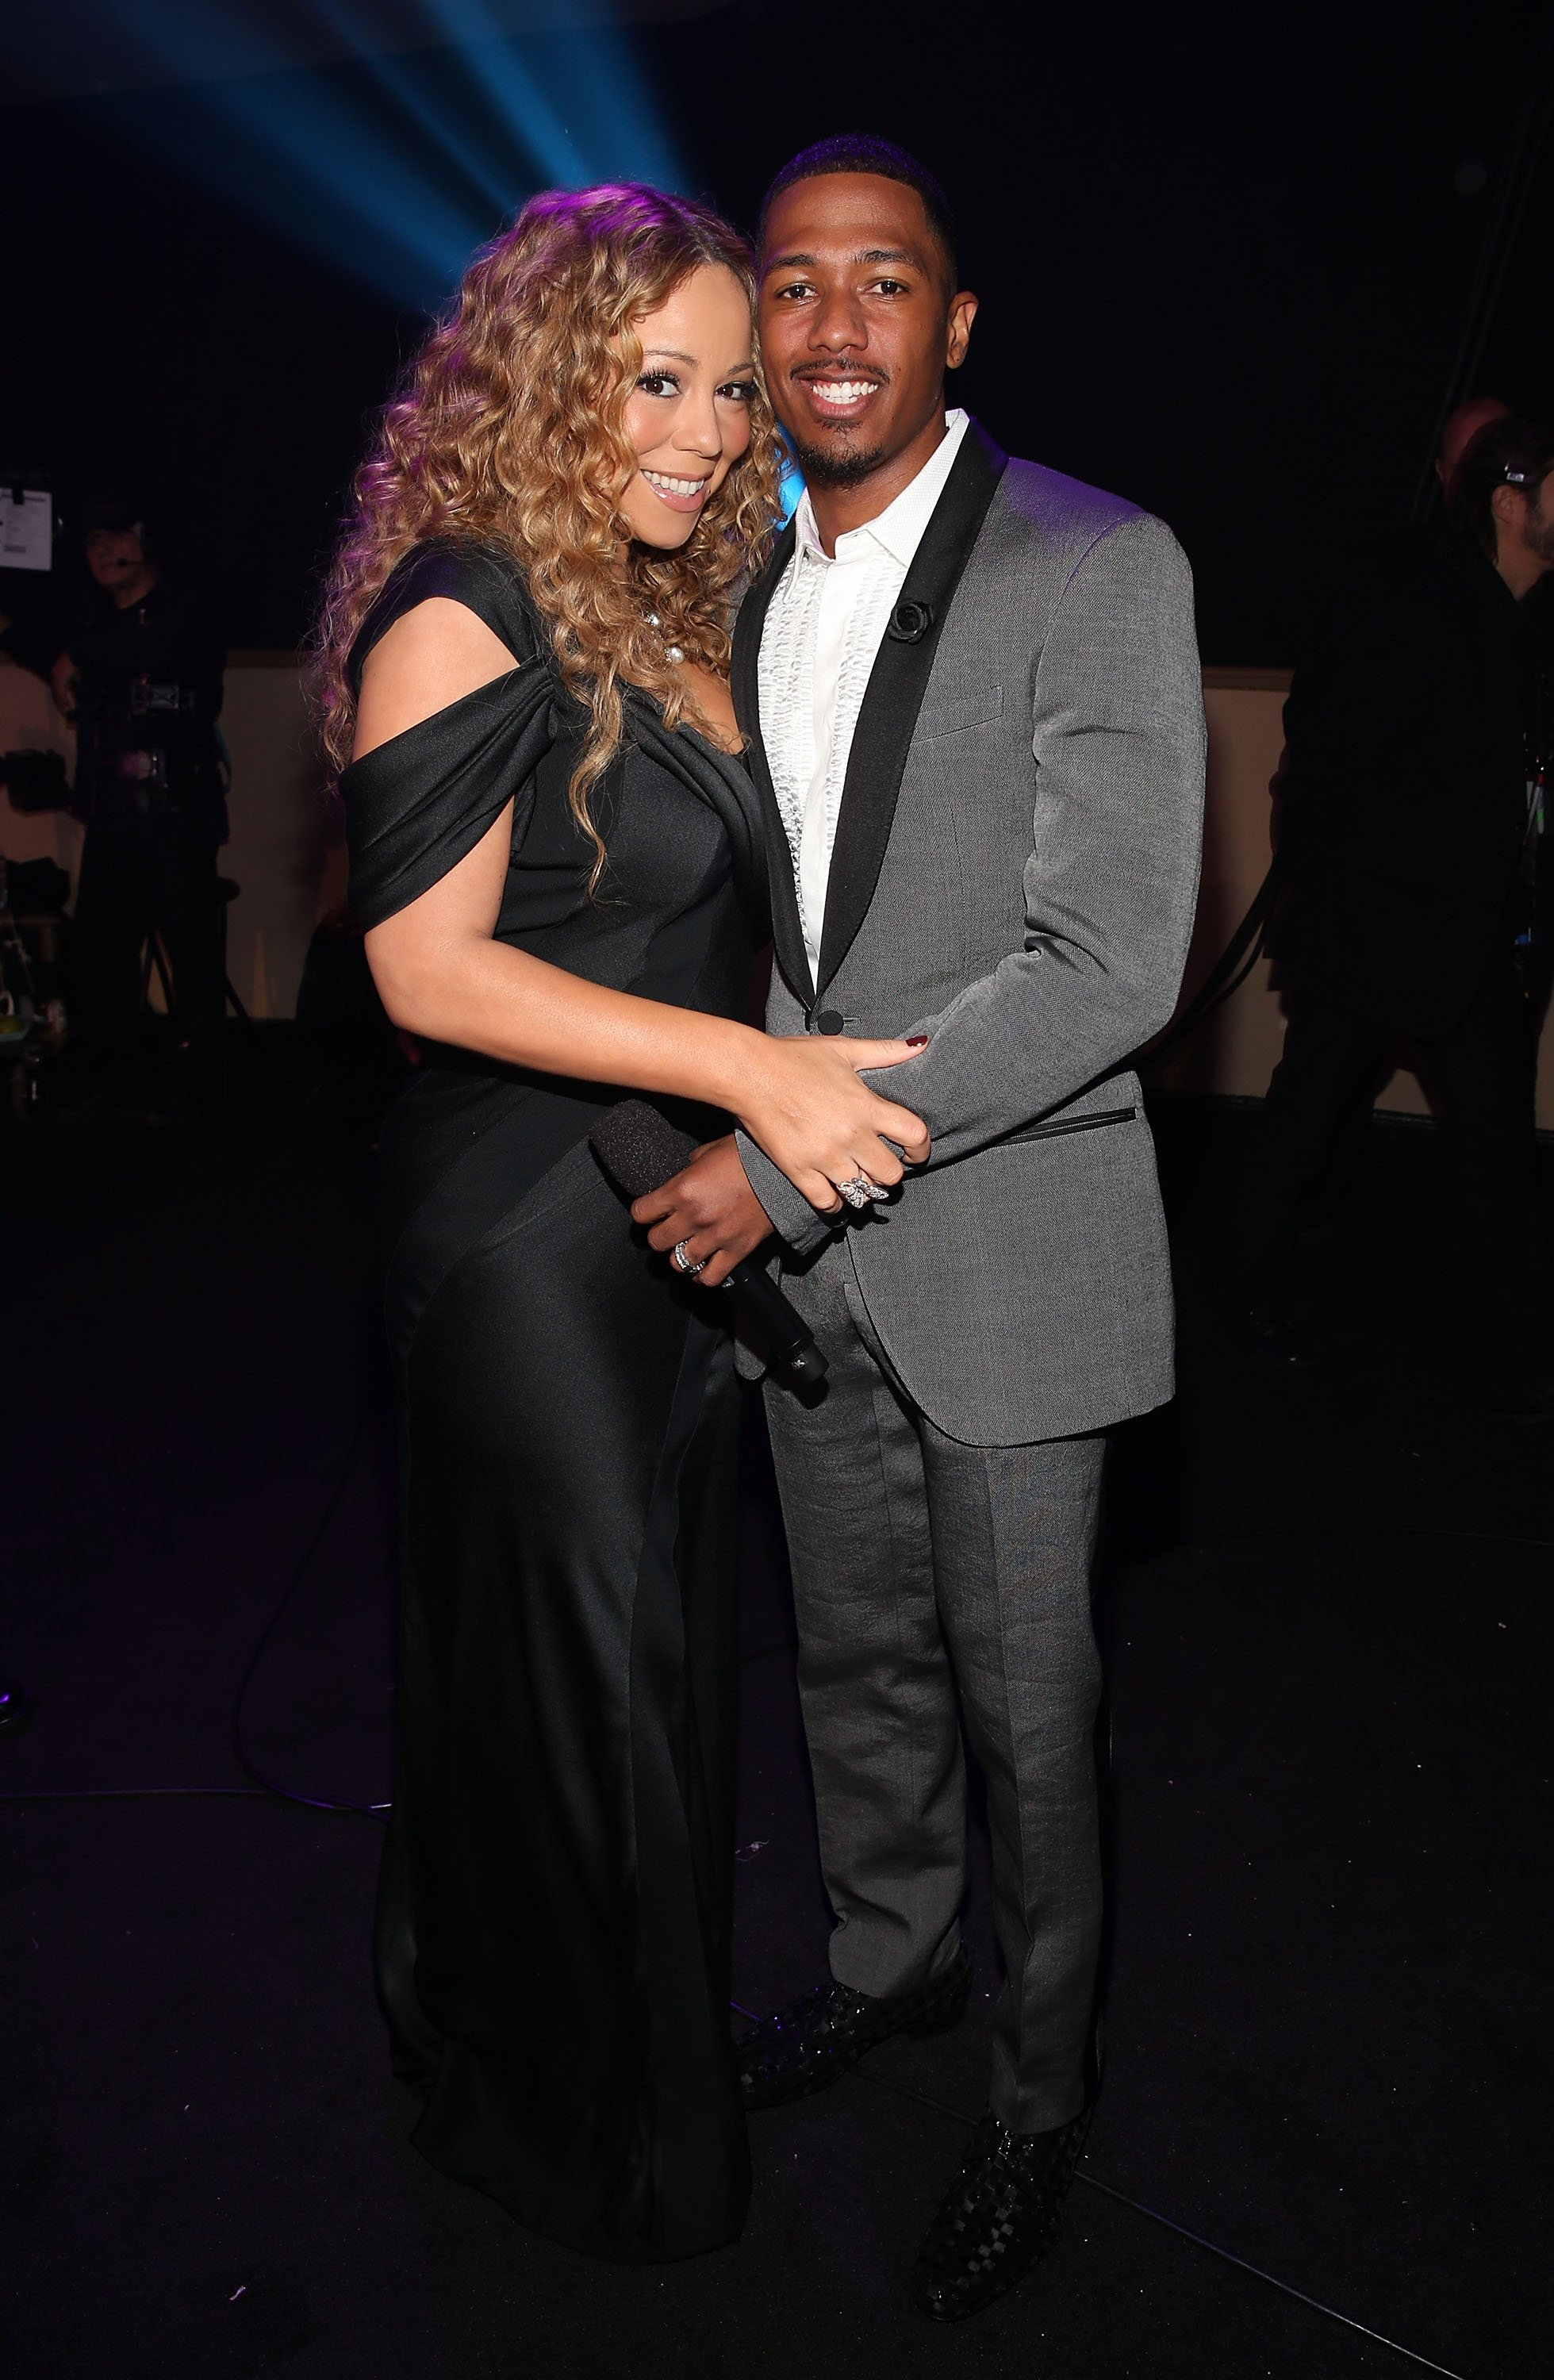 Mariah Carey & Nick Cannon at Nickelodeon's 2012 TeenNick HALO Awards on Nov. 17, 2012 in California   Photo: Getty Images